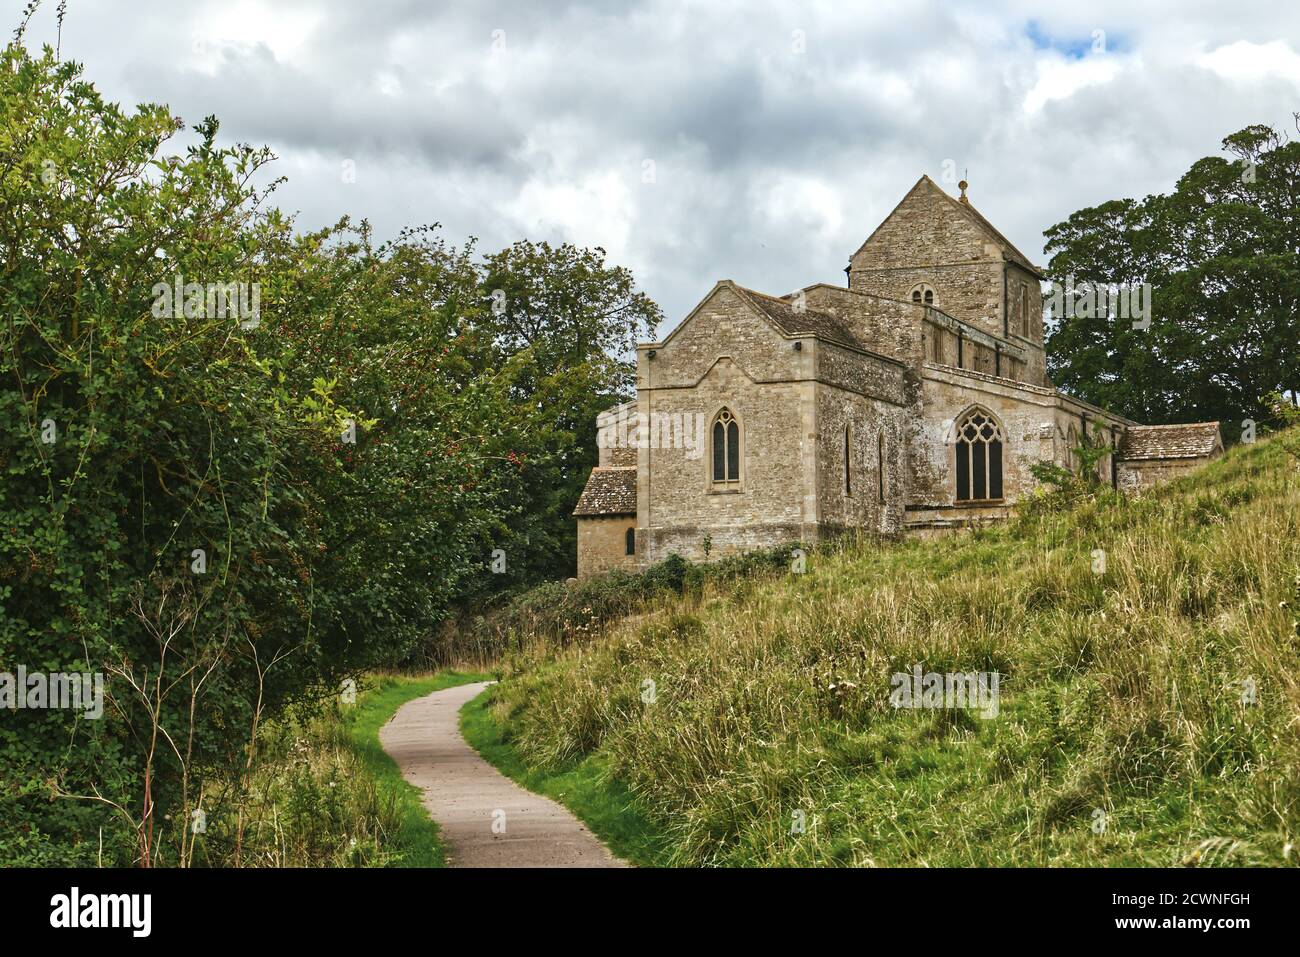 Wadenhoe Village High Resolution Stock Photography And Images Alamy